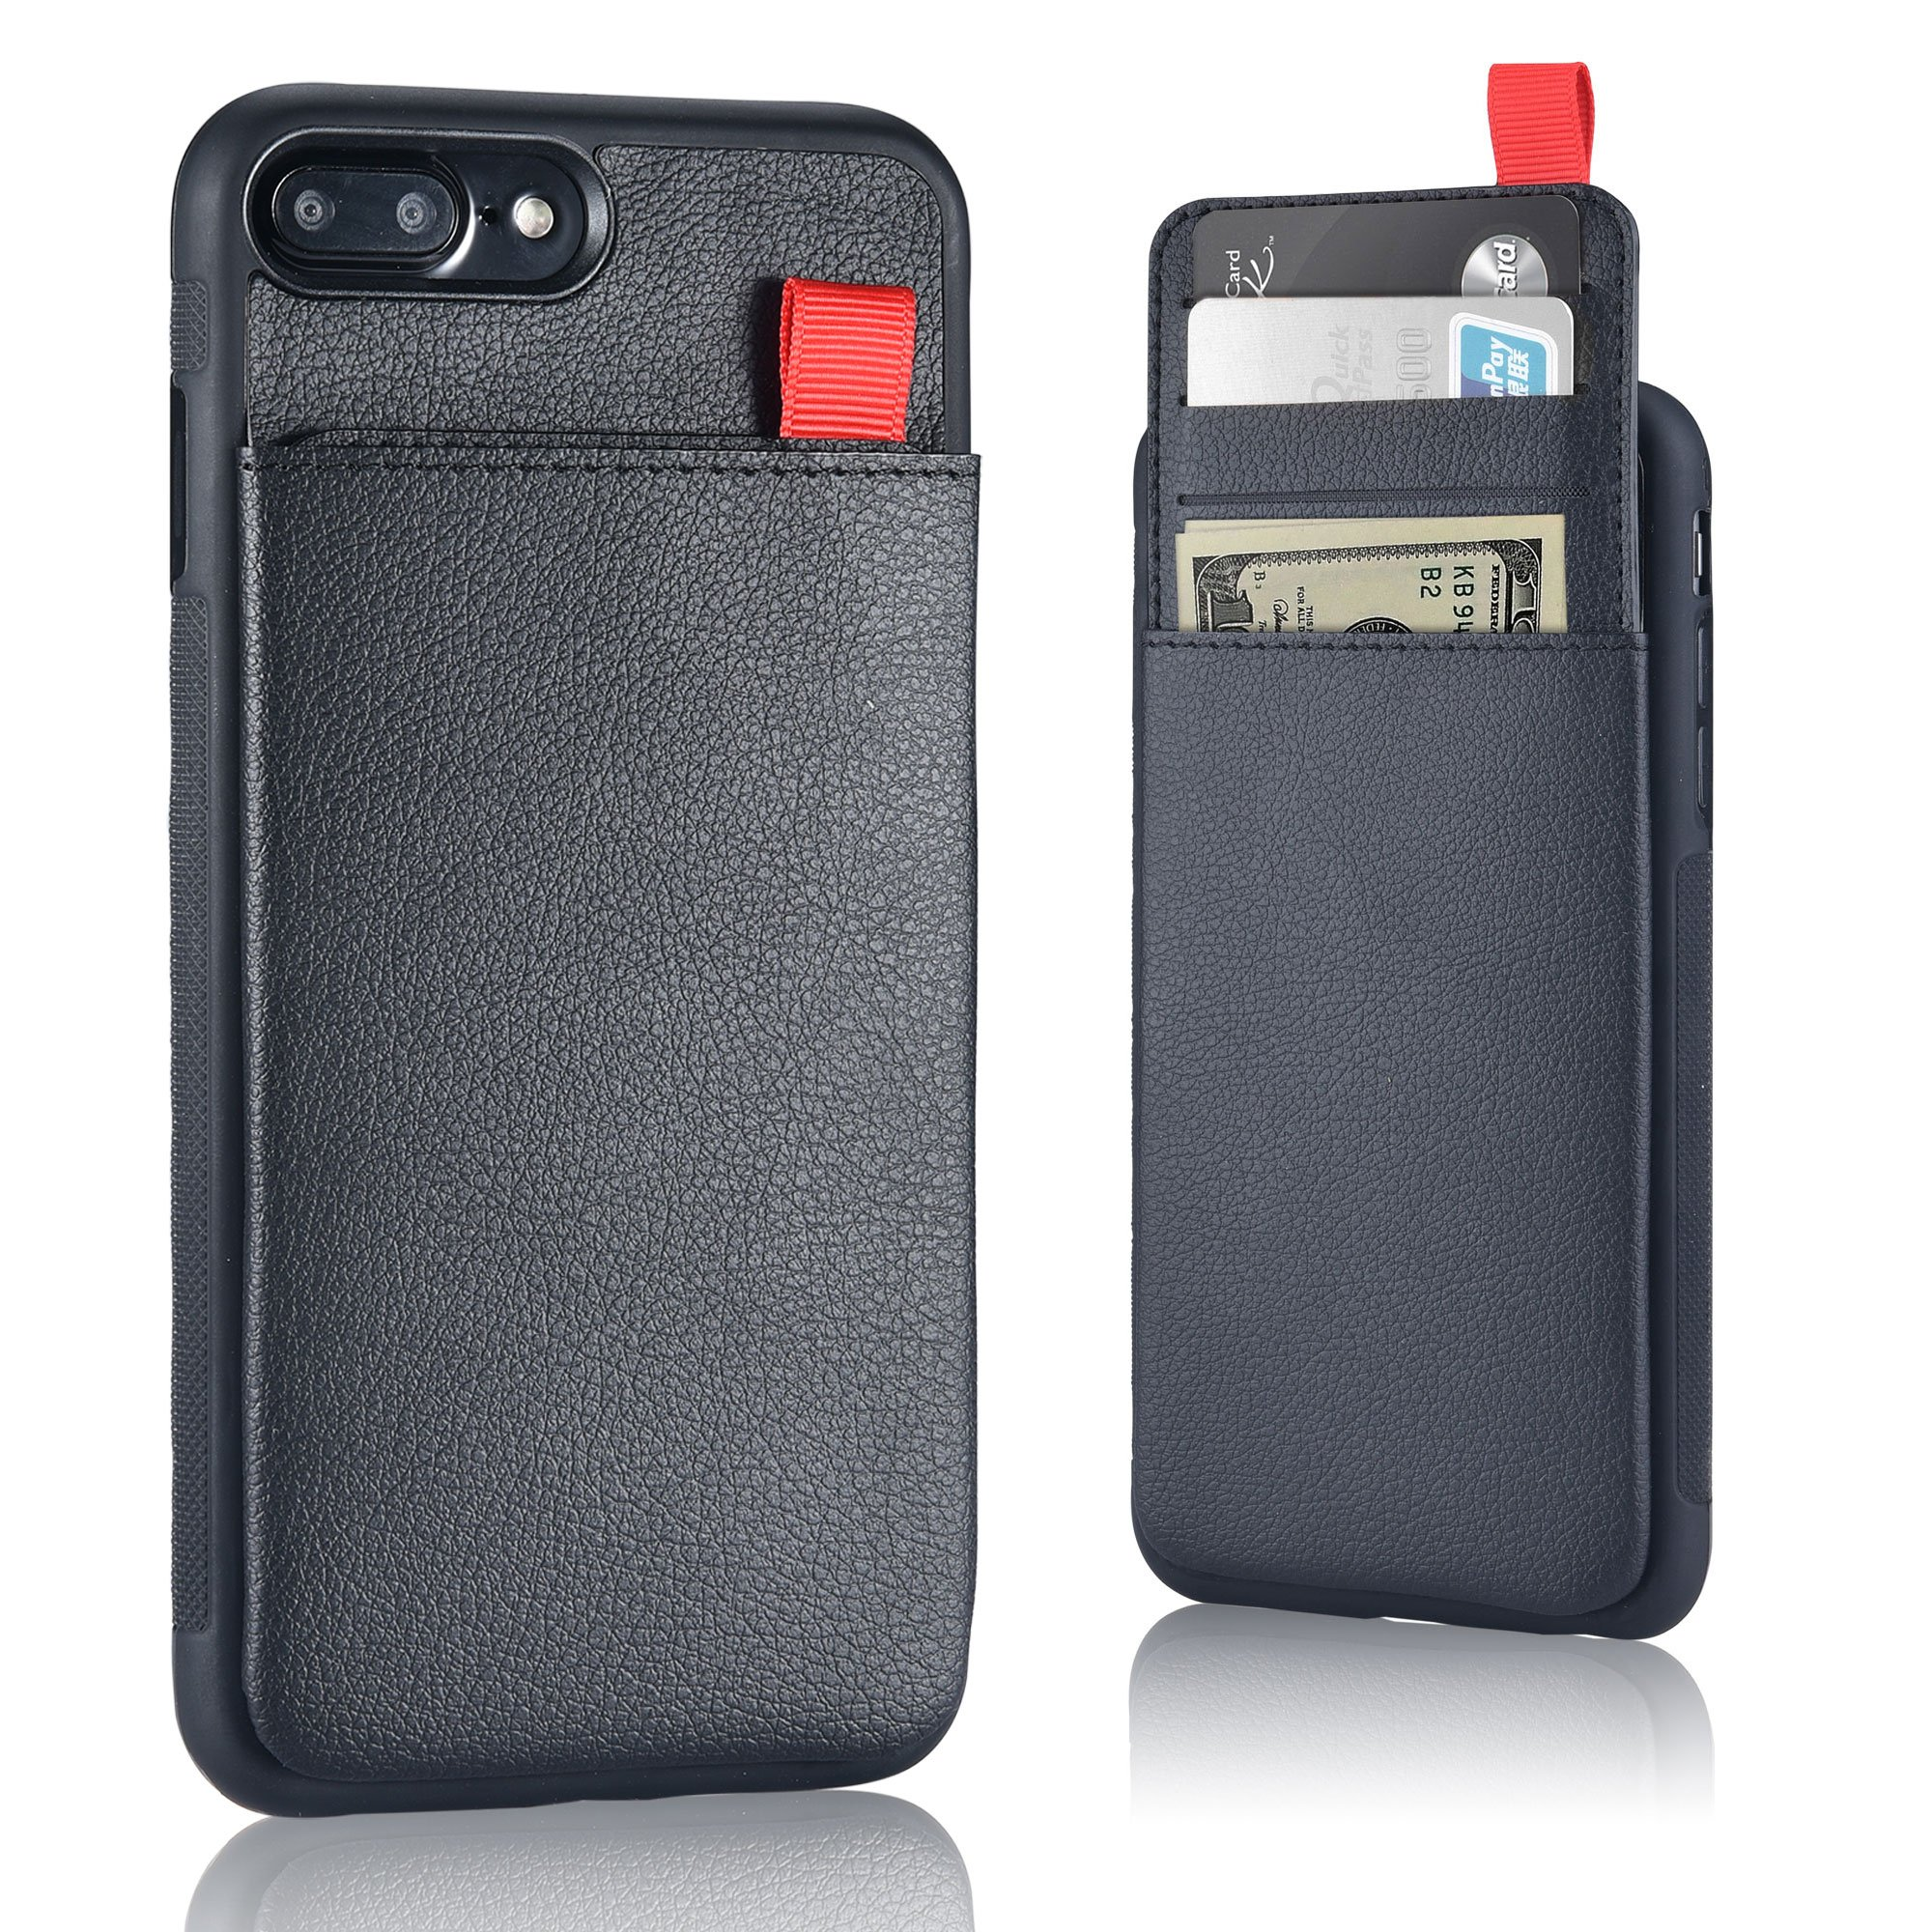 MANGATA TRITON Leather Wallet case compatible with iPhone 8 Plus, iPhone 7 Plus | Hidden Wallet Pocket, Rugged Shell | Cruelty Free Leather | Credit Card Holder, Cash Pocket, Screen Protector (Black) by Mangata Cases (Image #1)